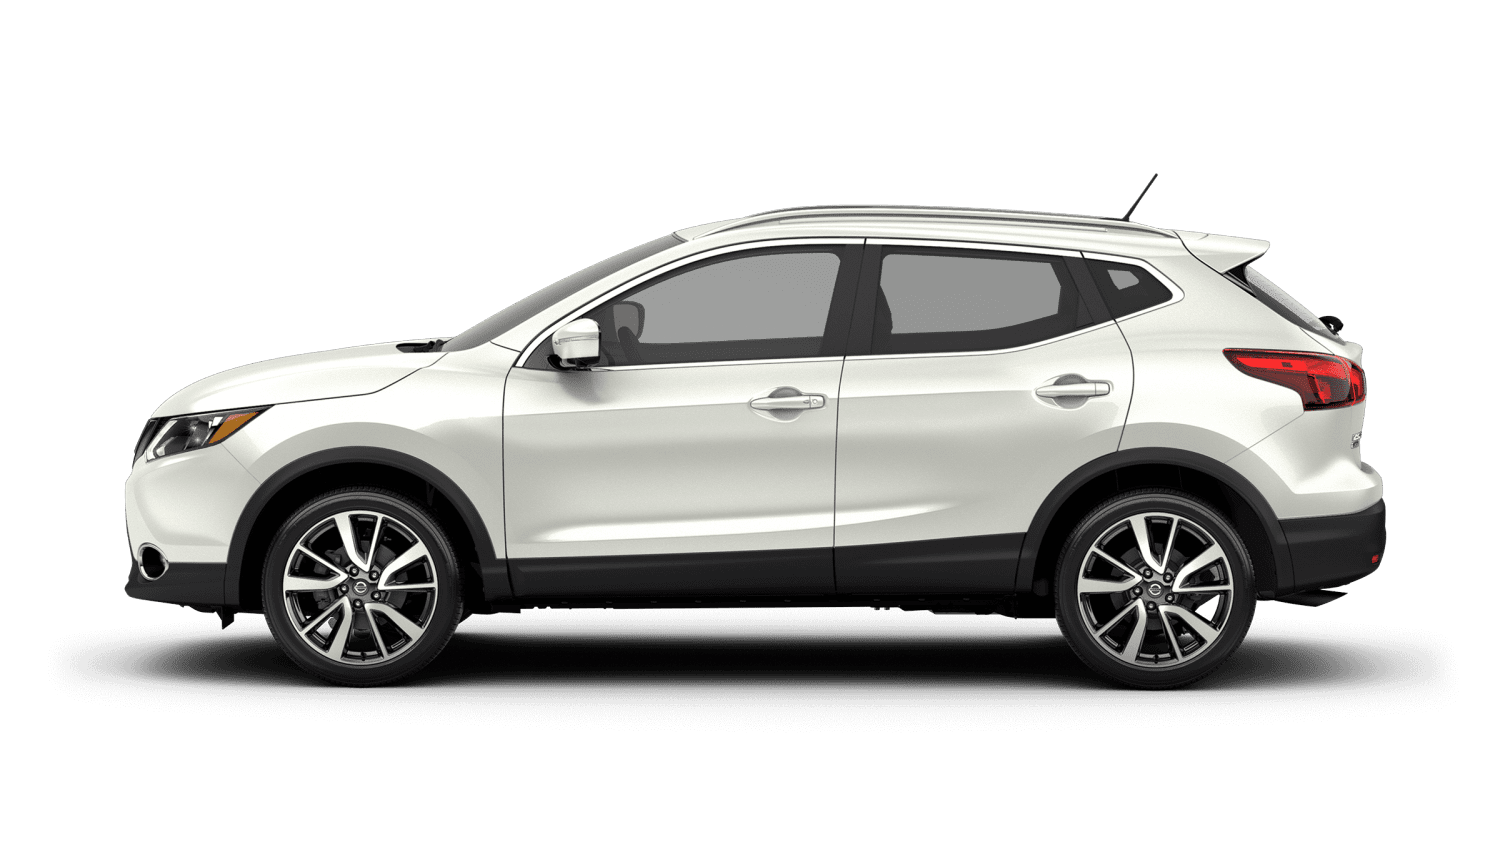 2018.5 Nissan Rogue - The Tennessee Tribune